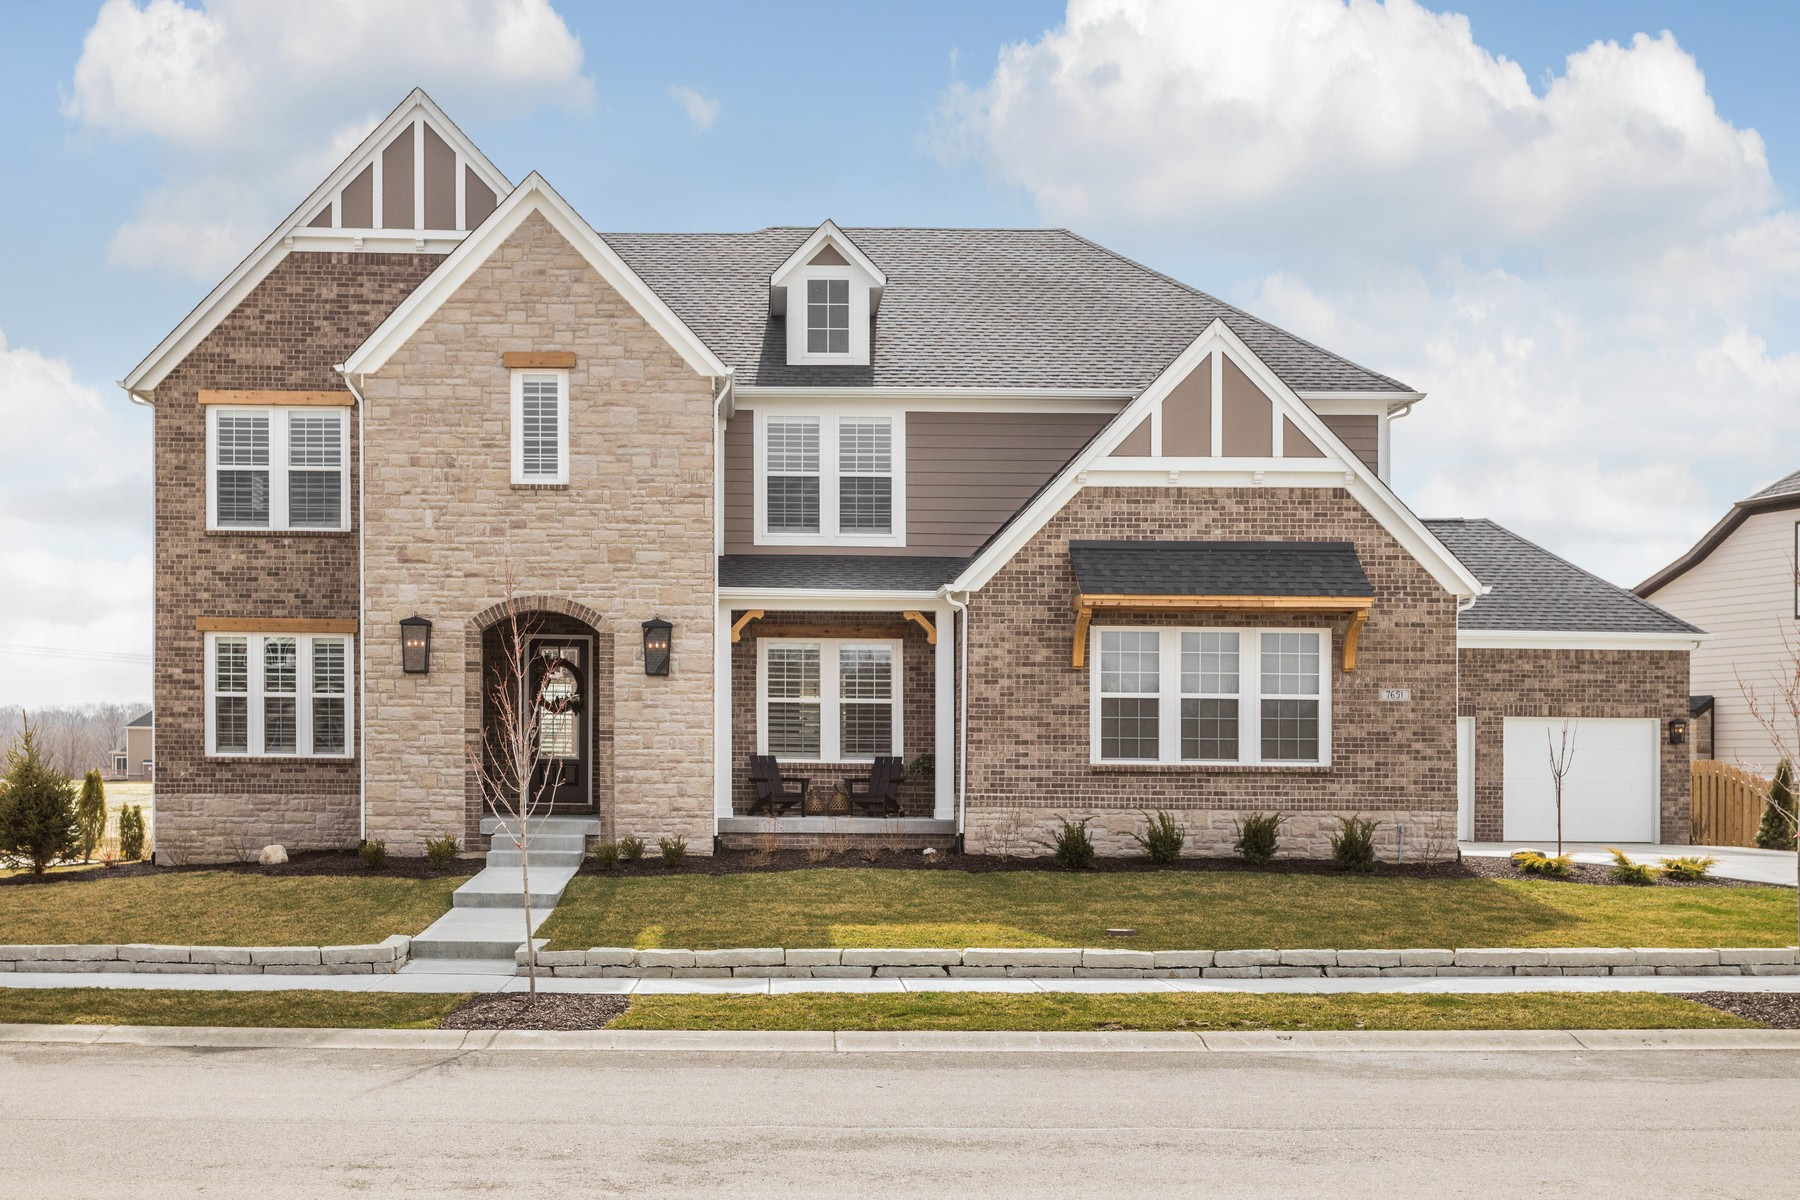 Single Family Homes for Active at Luxury Living in Stonegate 7651 Deerfield Way Zionsville, Indiana 46077 United States